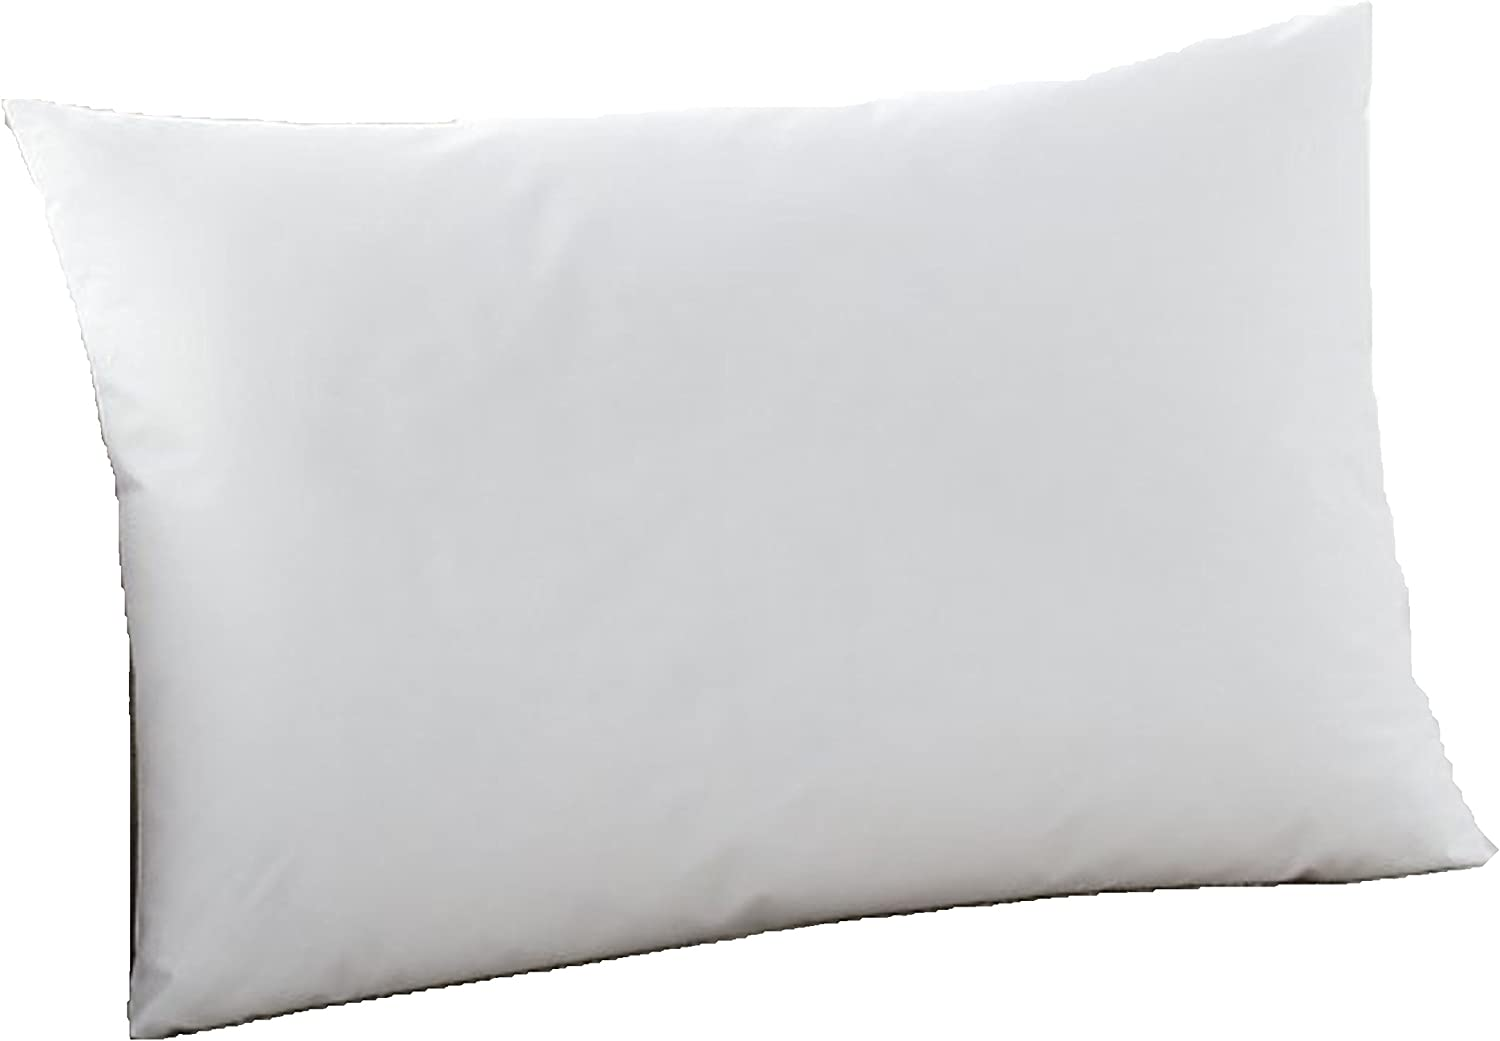 Amazon Com Moonrest Lumbar Pillow Form Insert Hypoallergenic Sham Stuffer 100 Polyester Microfiber Fill Lined With Woven Cotton Blend Cover For Decorative Pillow Couch Sofa Bed Cushions 13 X 20 Home Kitchen